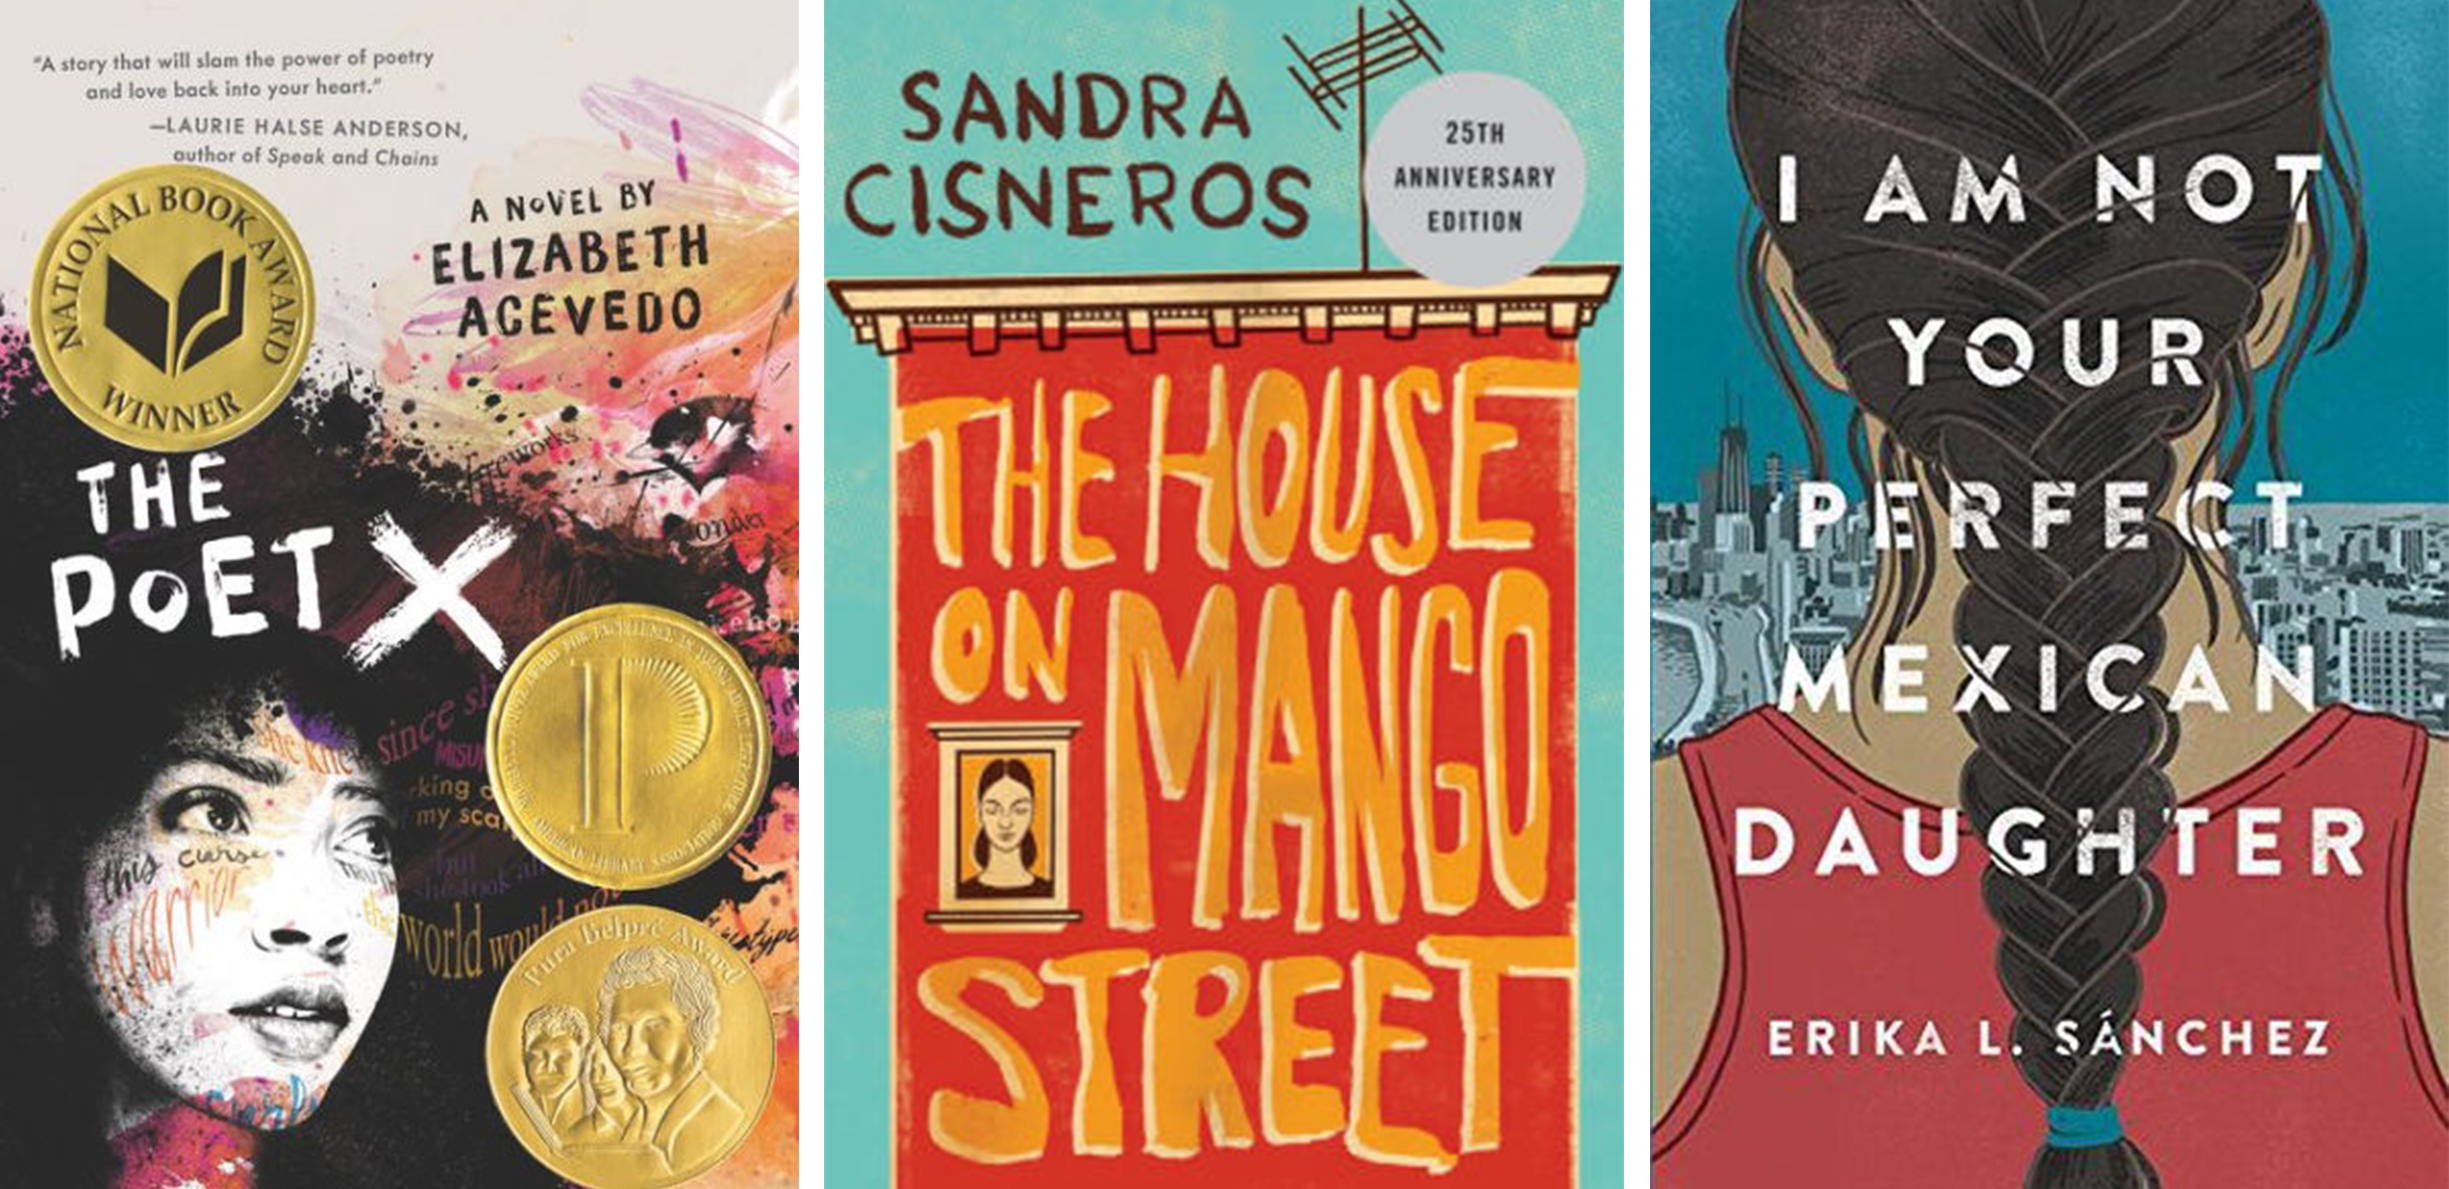 books-written-by-latina-authors-sandra-cisneros-elizabeth-acevedo-erika-l-sanchez.png